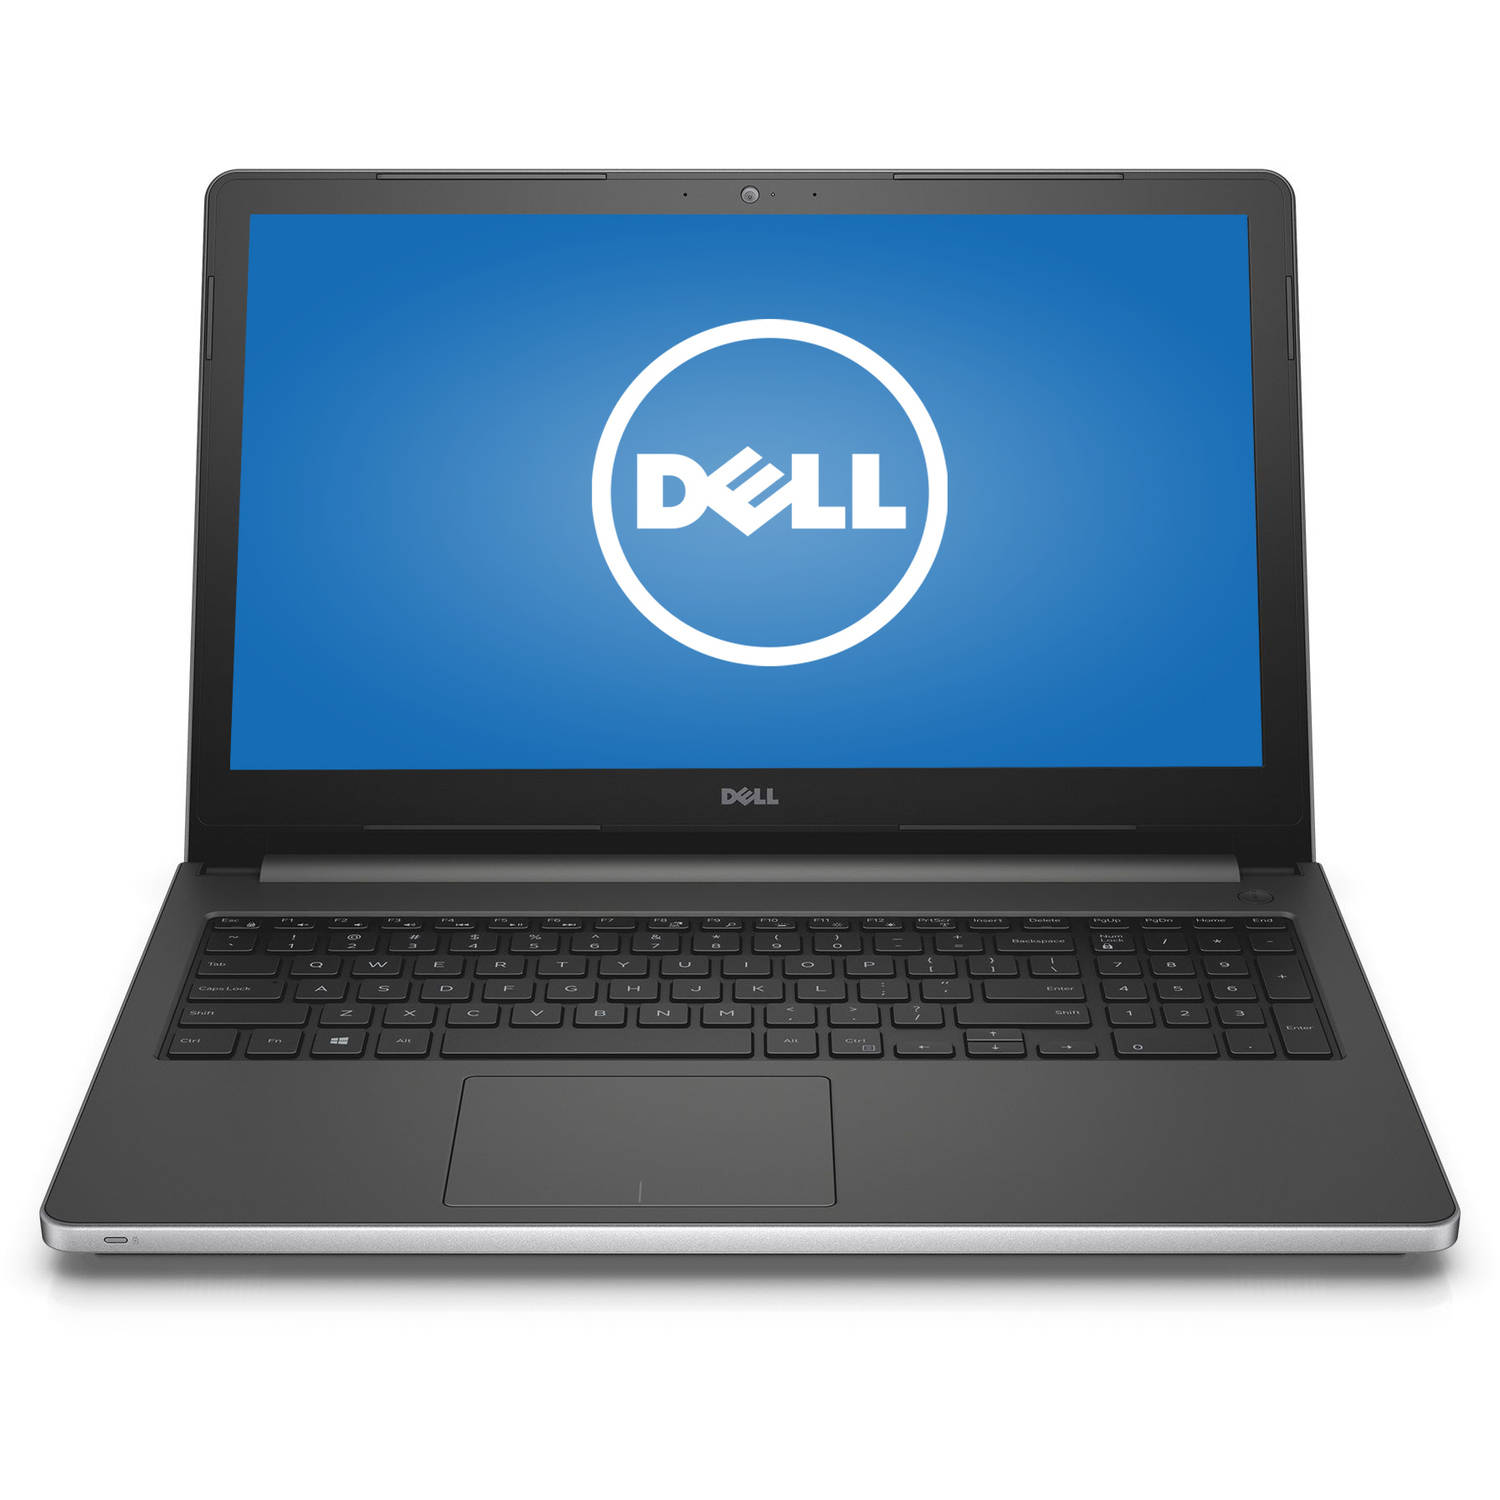 "Dell Silver 15.6"" Inspiron i5559 Laptop PC with Intel Core i5-6200U Processor, 8GB Memory, 1TB Hard Drive, touch screen and Windows 10 Home"